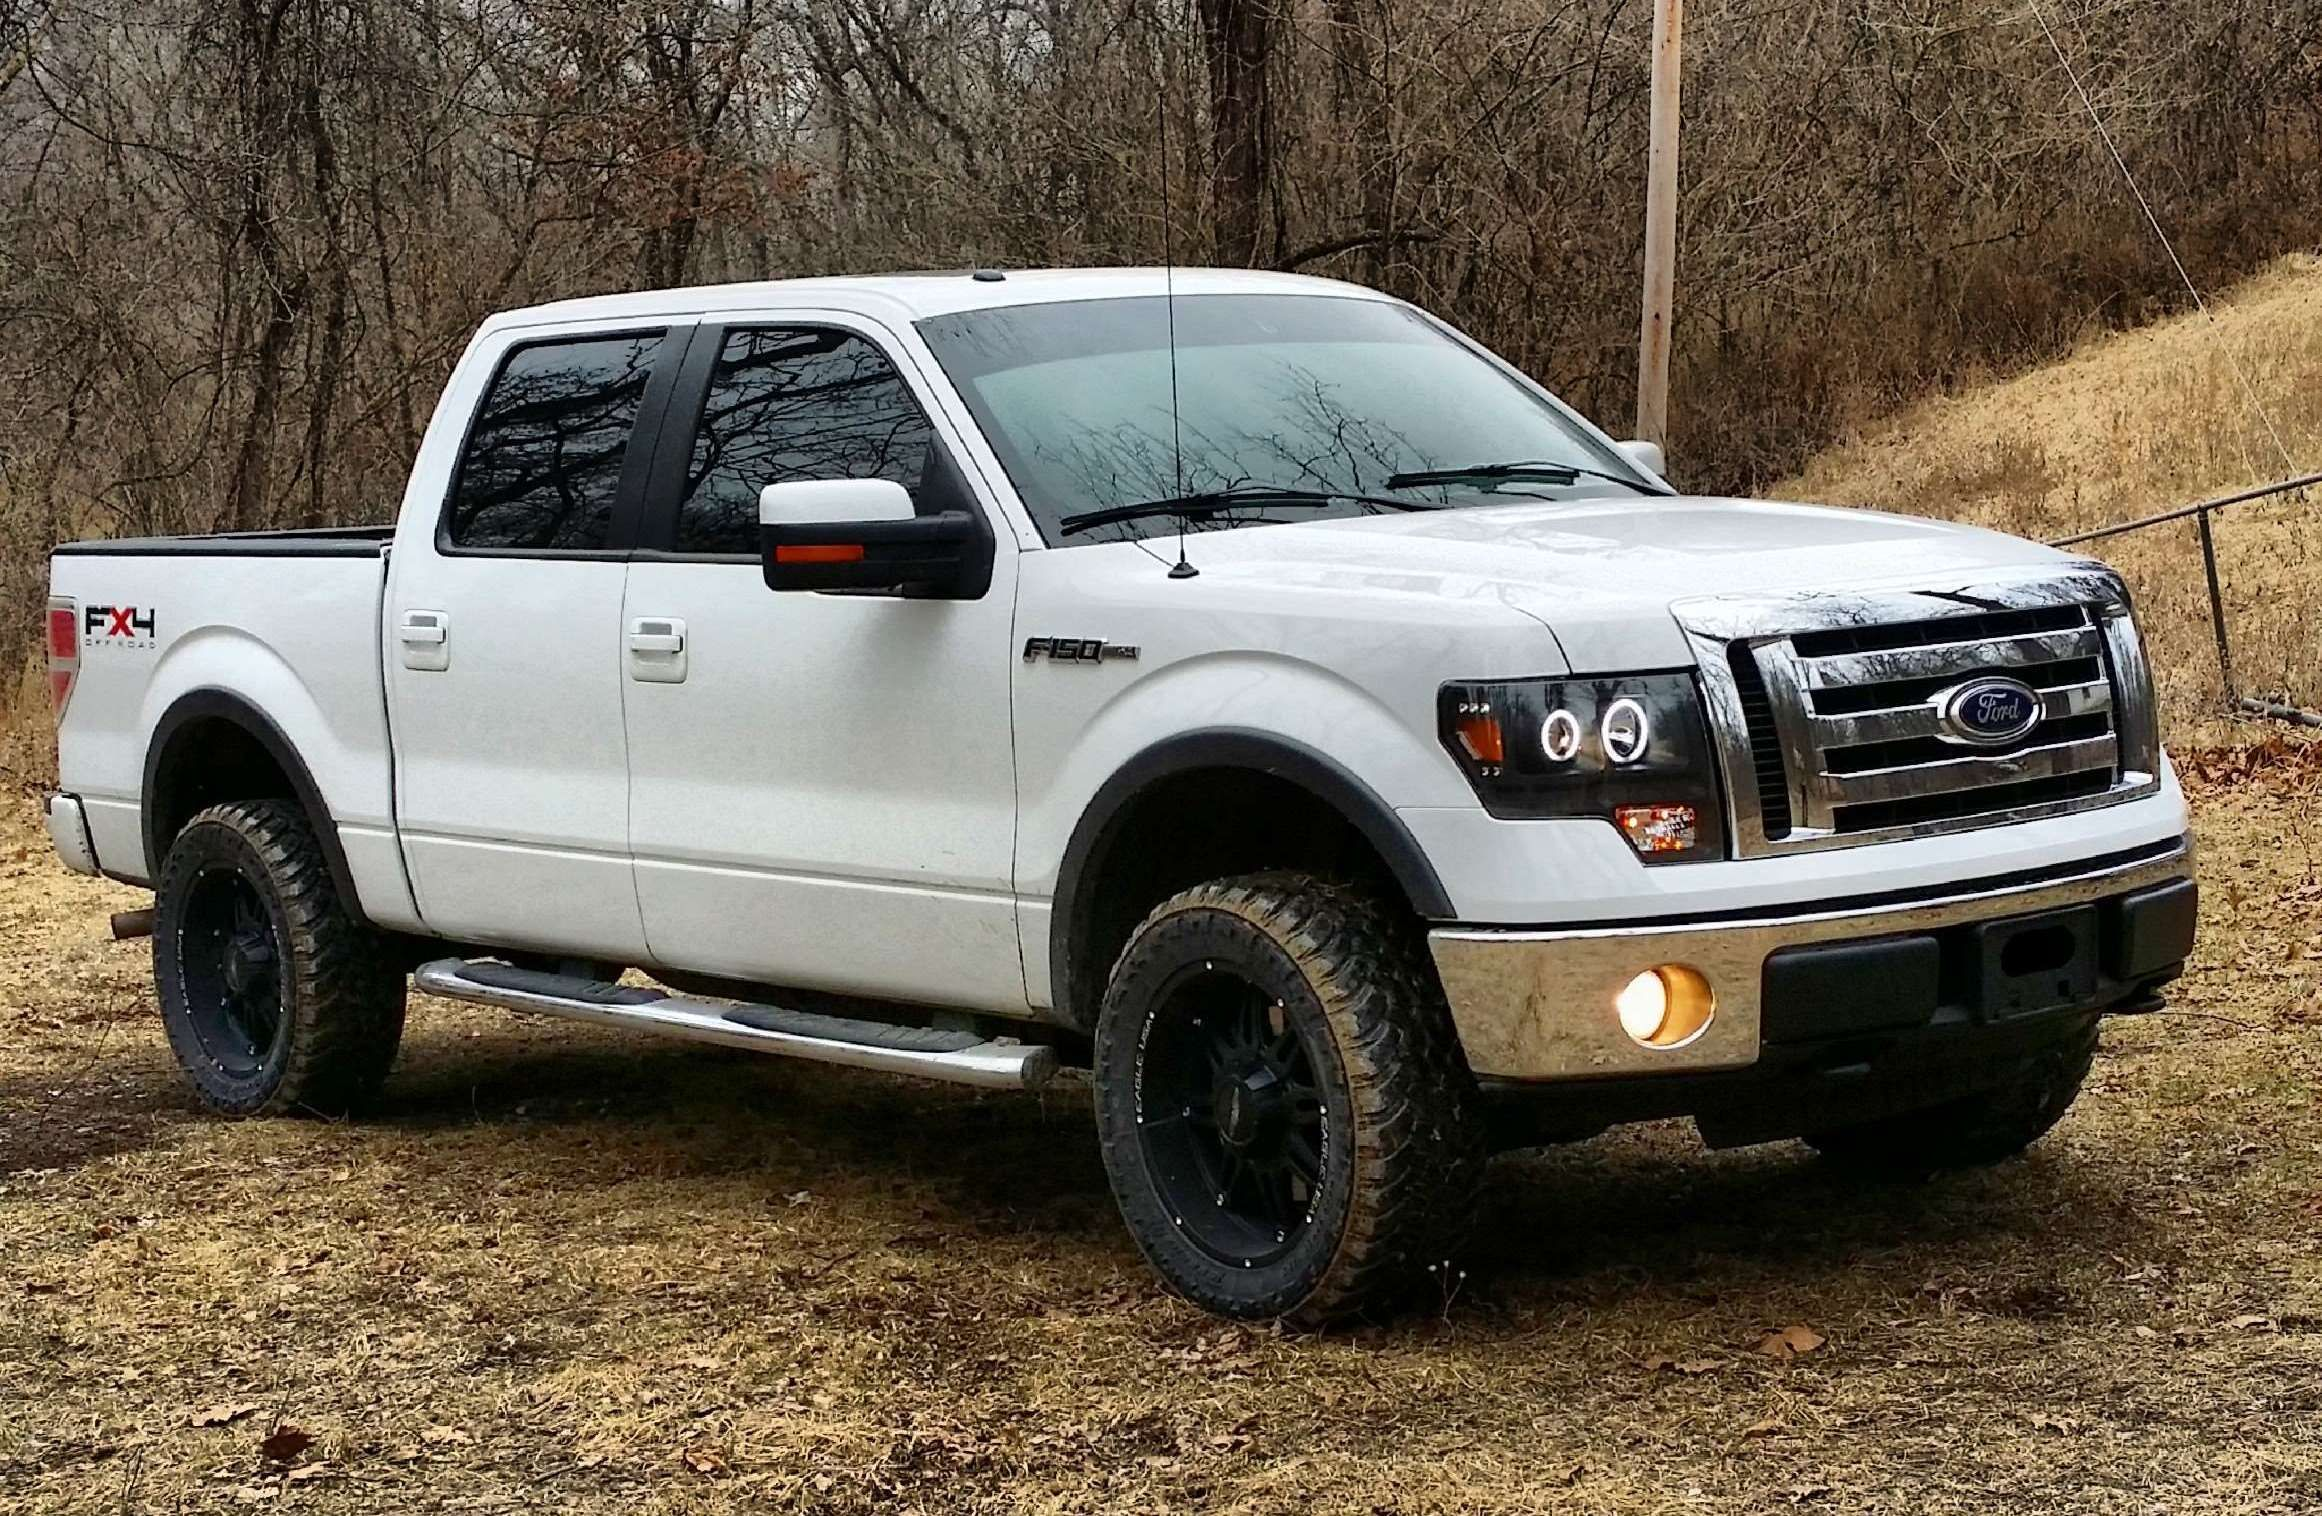 Make Ford Model F150 Year 2010 Exterior Color White Interior